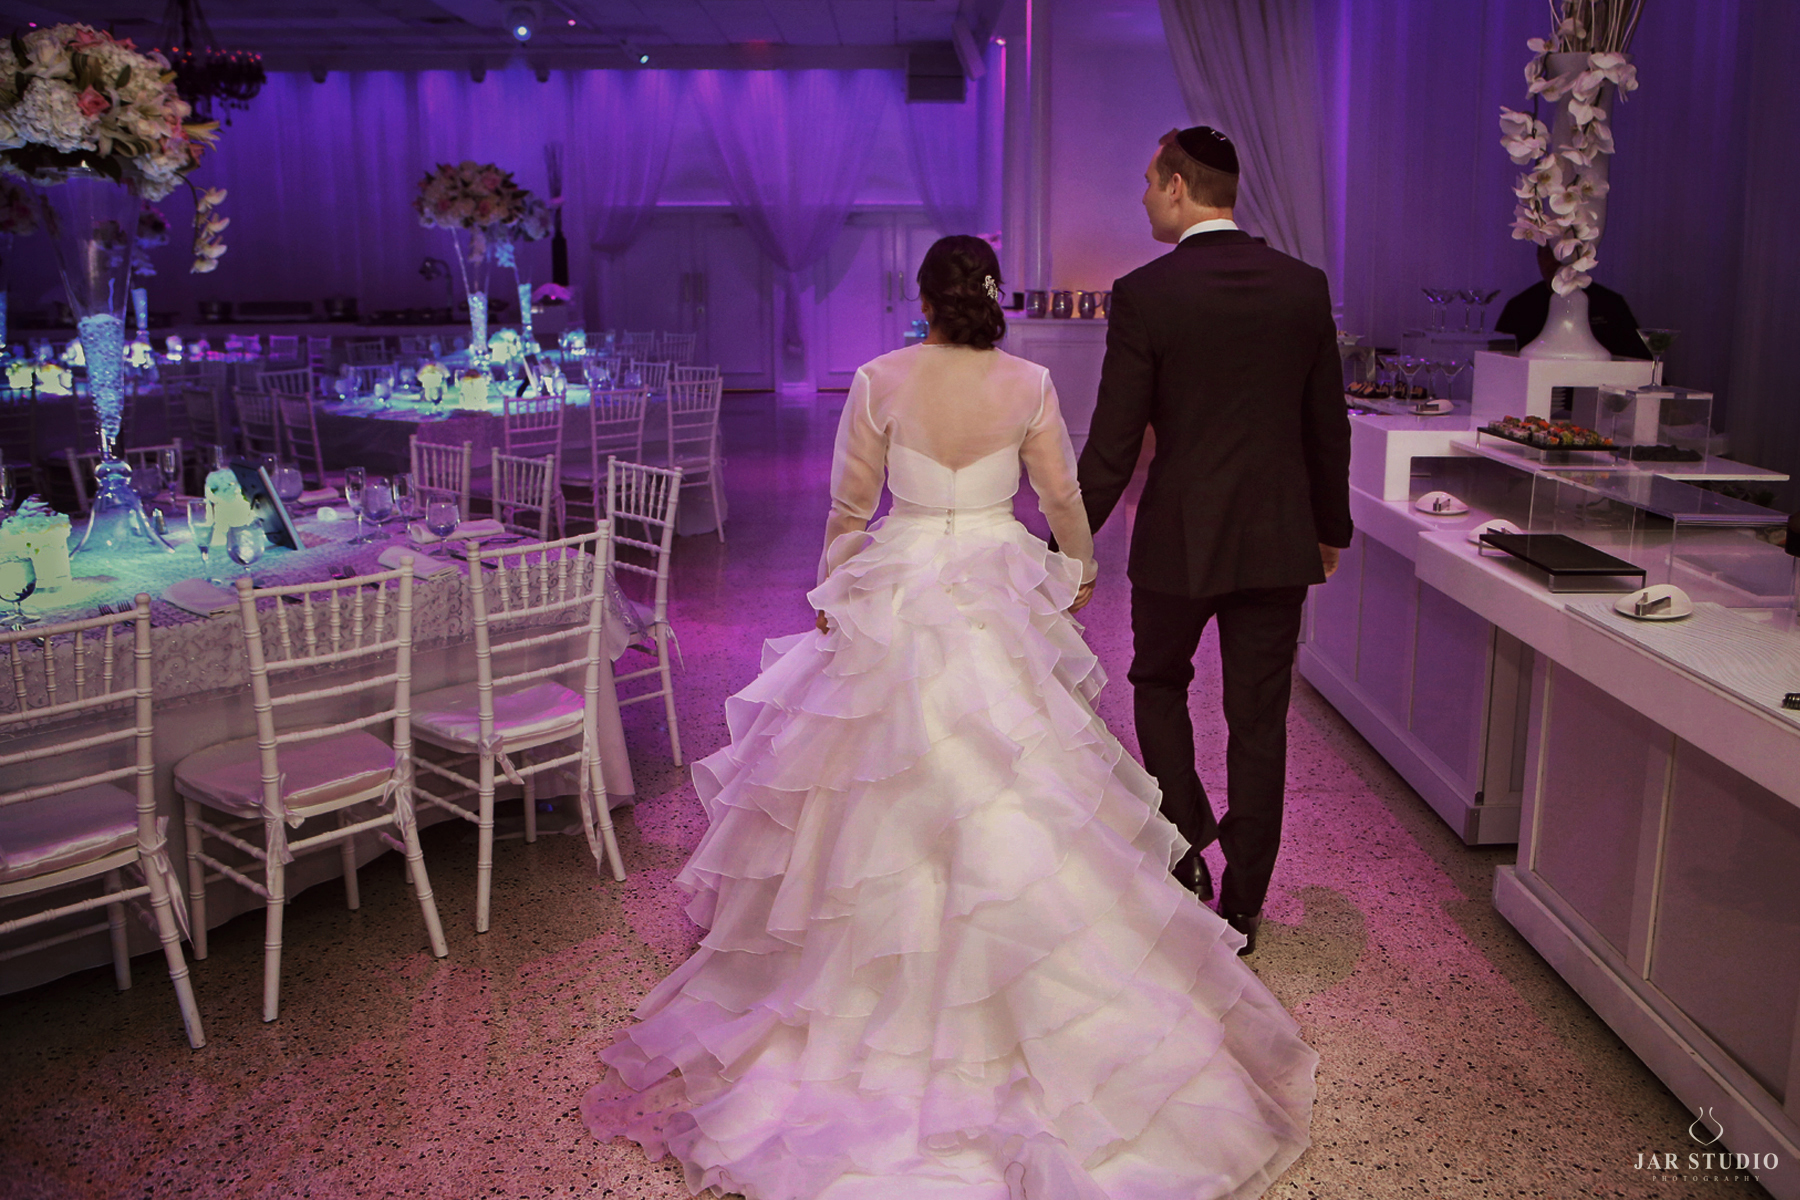 38-bride-groom-fun-reception-orlando-venue-jarstudio.JPG